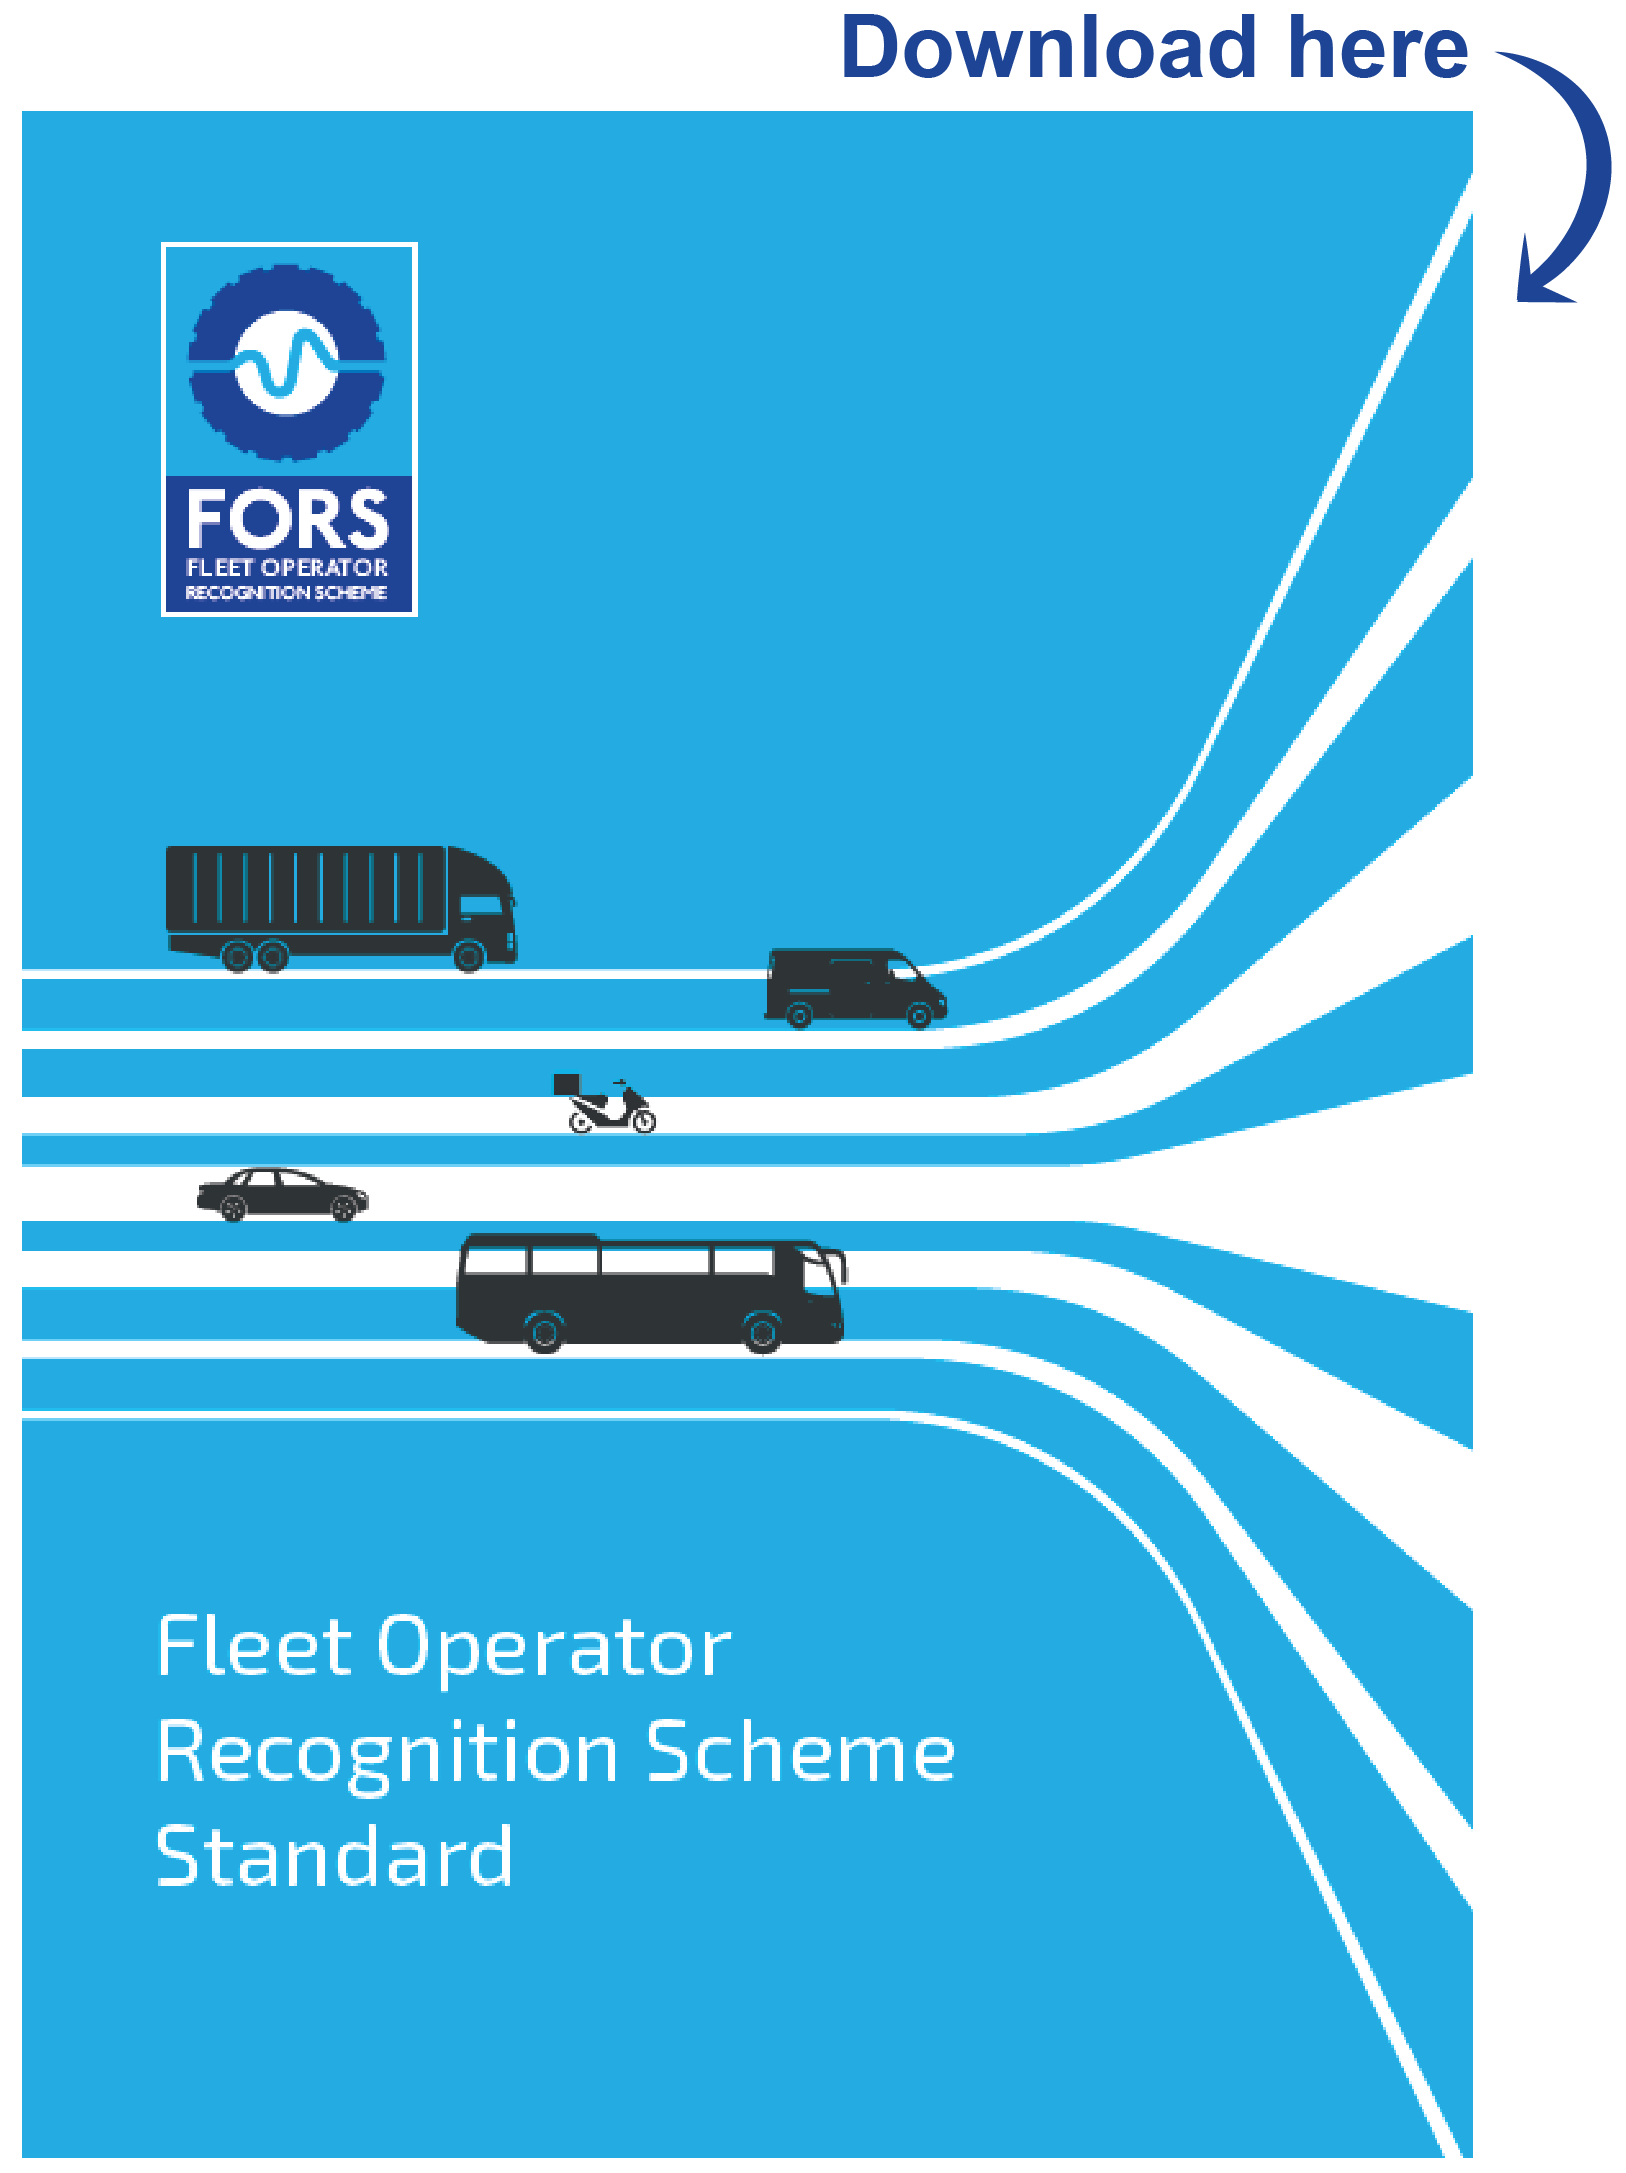 Fors Homepage Fors Fleet Operator Recognition Scheme